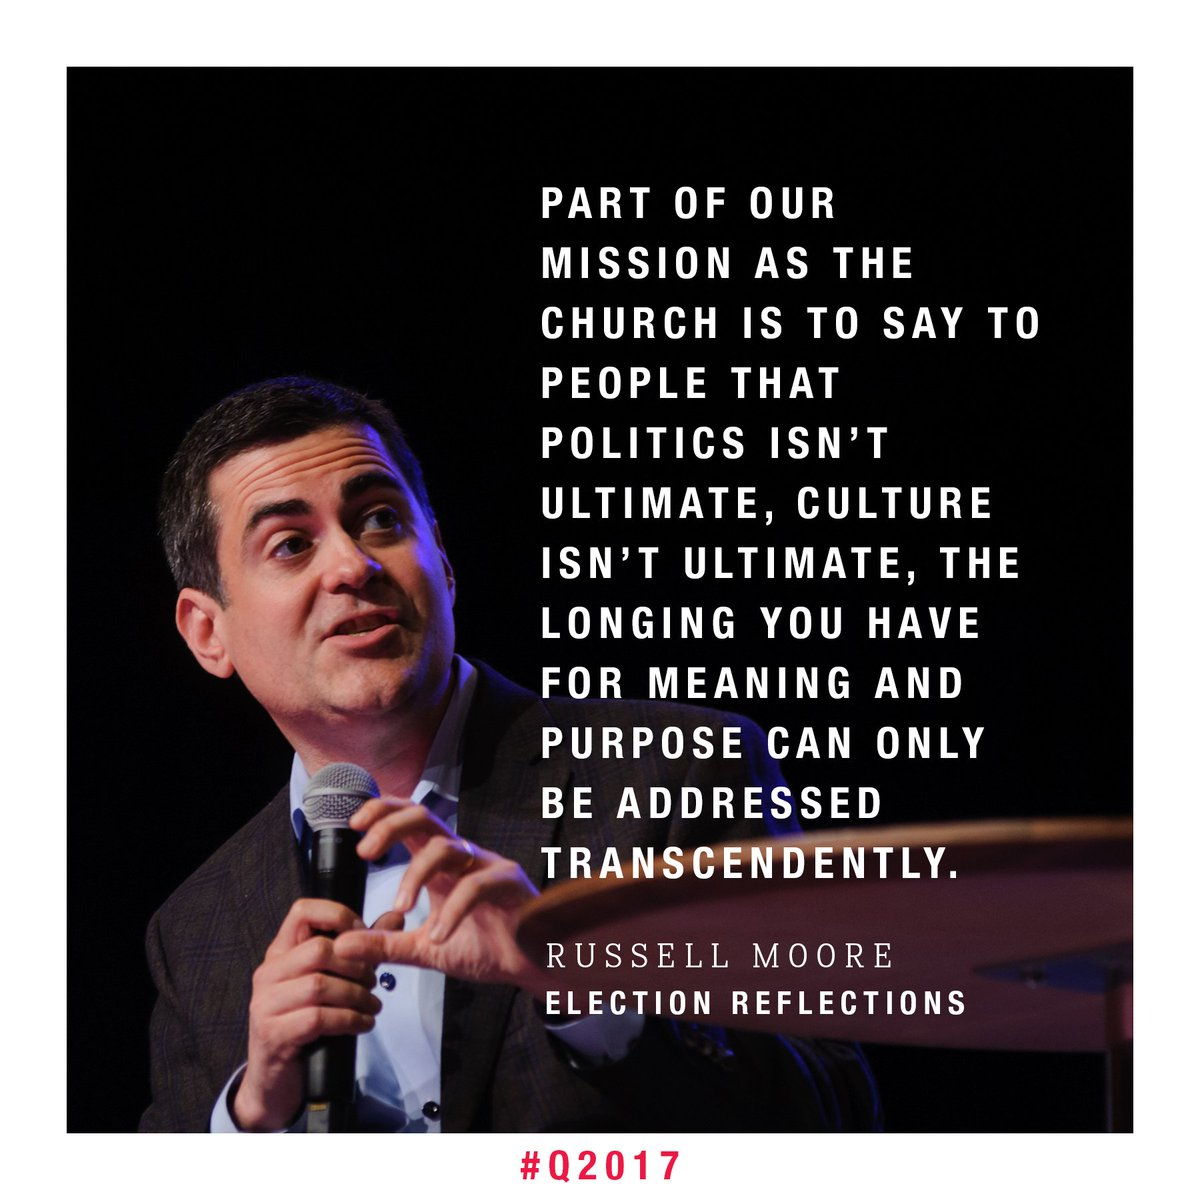 Great perspective from @drmoore at #Q2017 https://t.co/jZP7QoA9H4